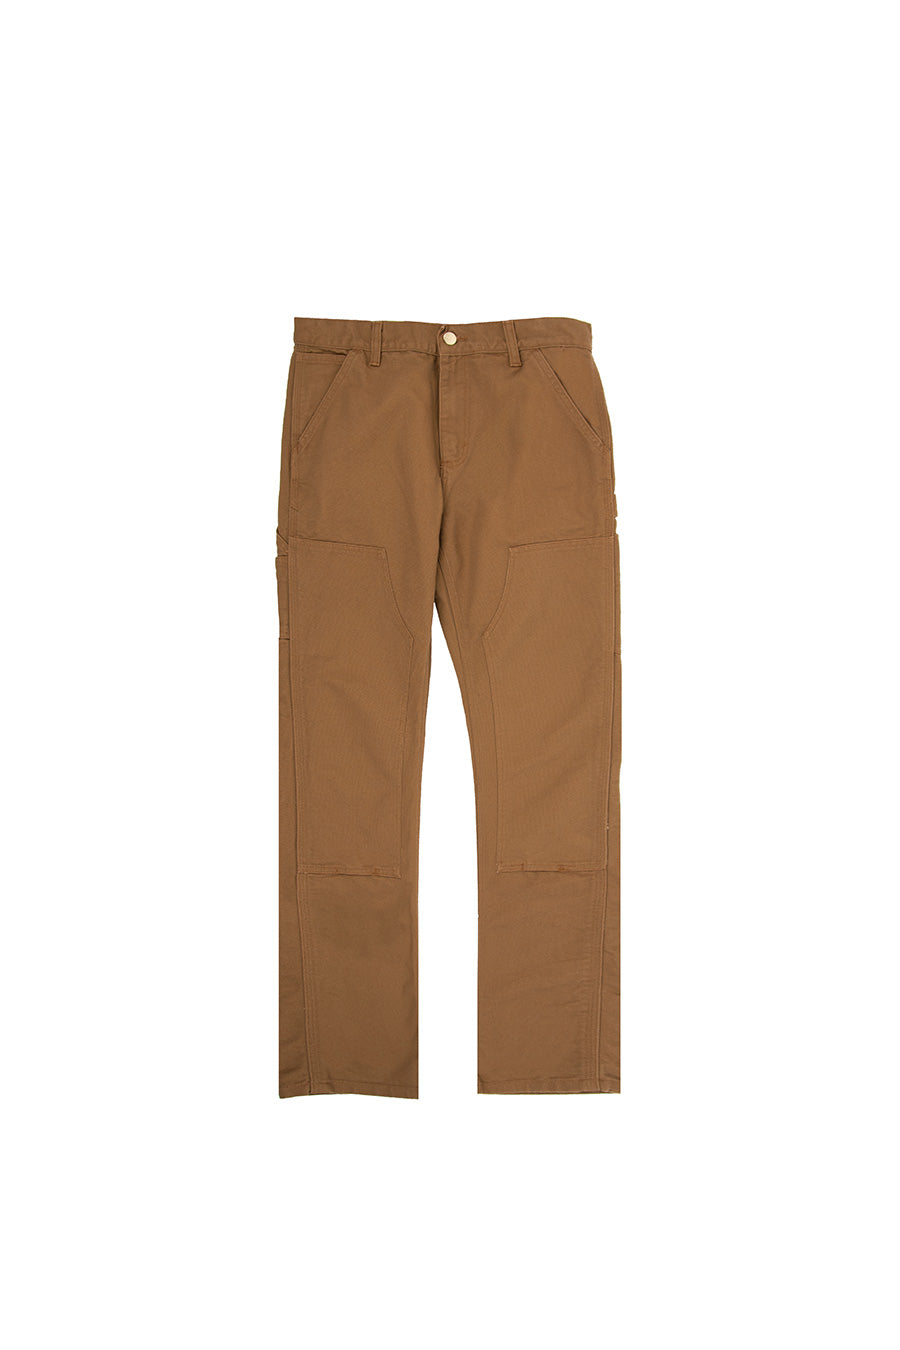 Carhartt WIP - Hamilton Brown Ruck Double Knee Pant | 1032 SPACE